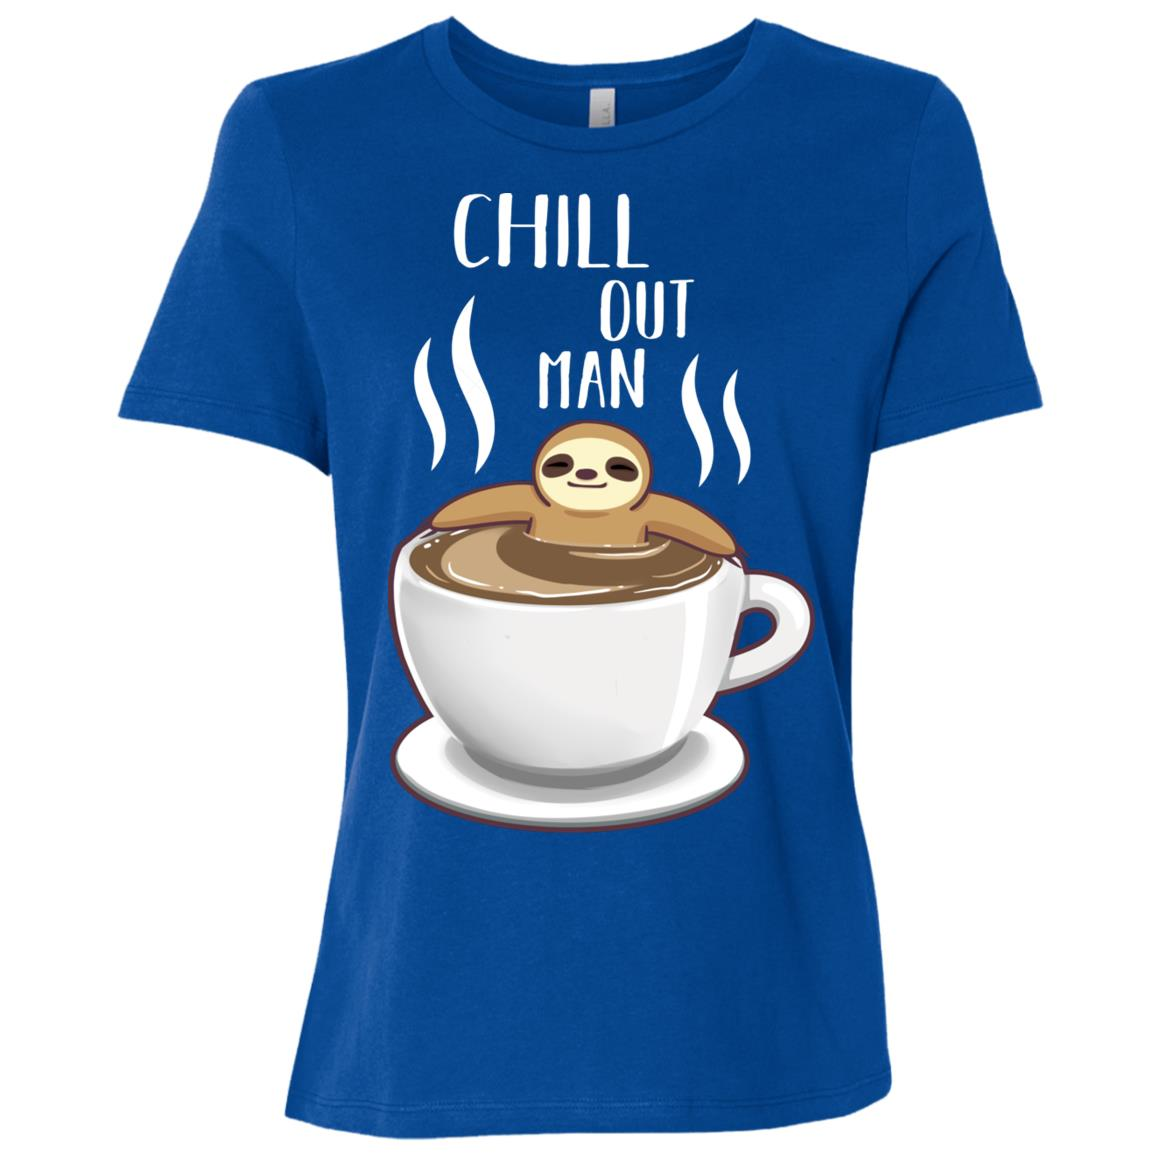 Chill Out Man Sloth Coffee Lover Funny Gift Cute Women Short Sleeve T-Shirt